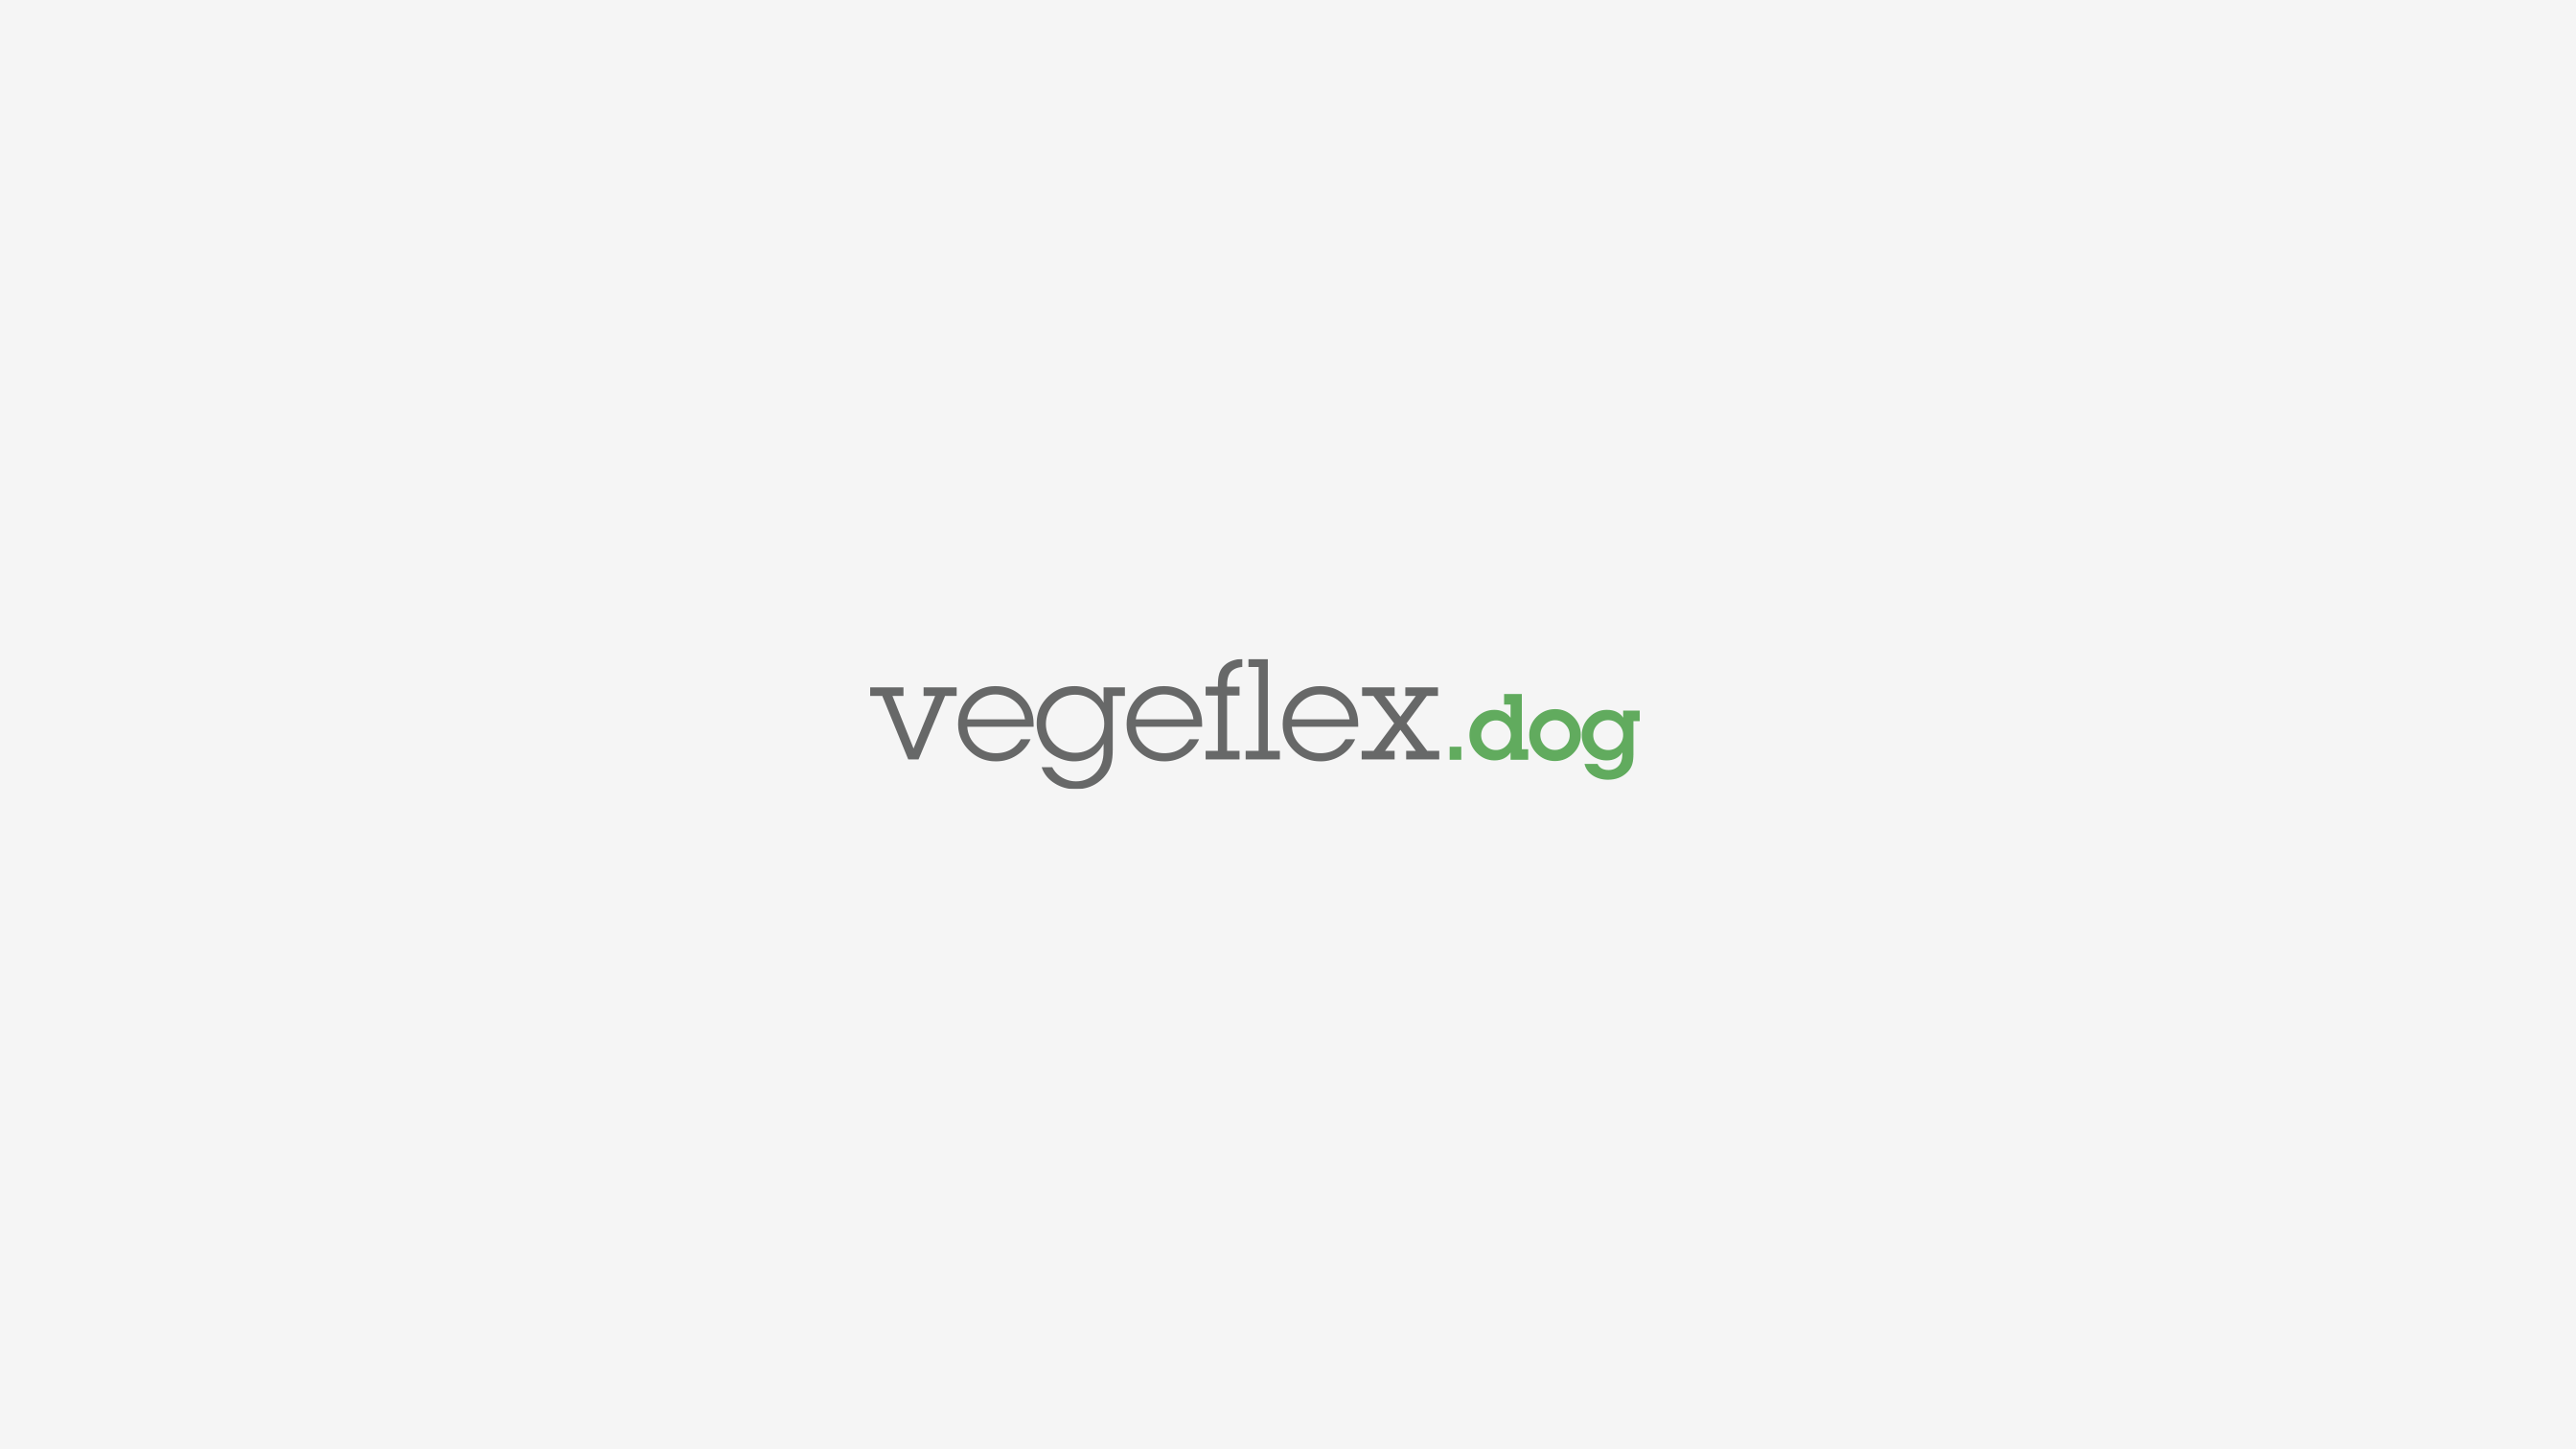 vegeflex-logotype-dog-pikteo